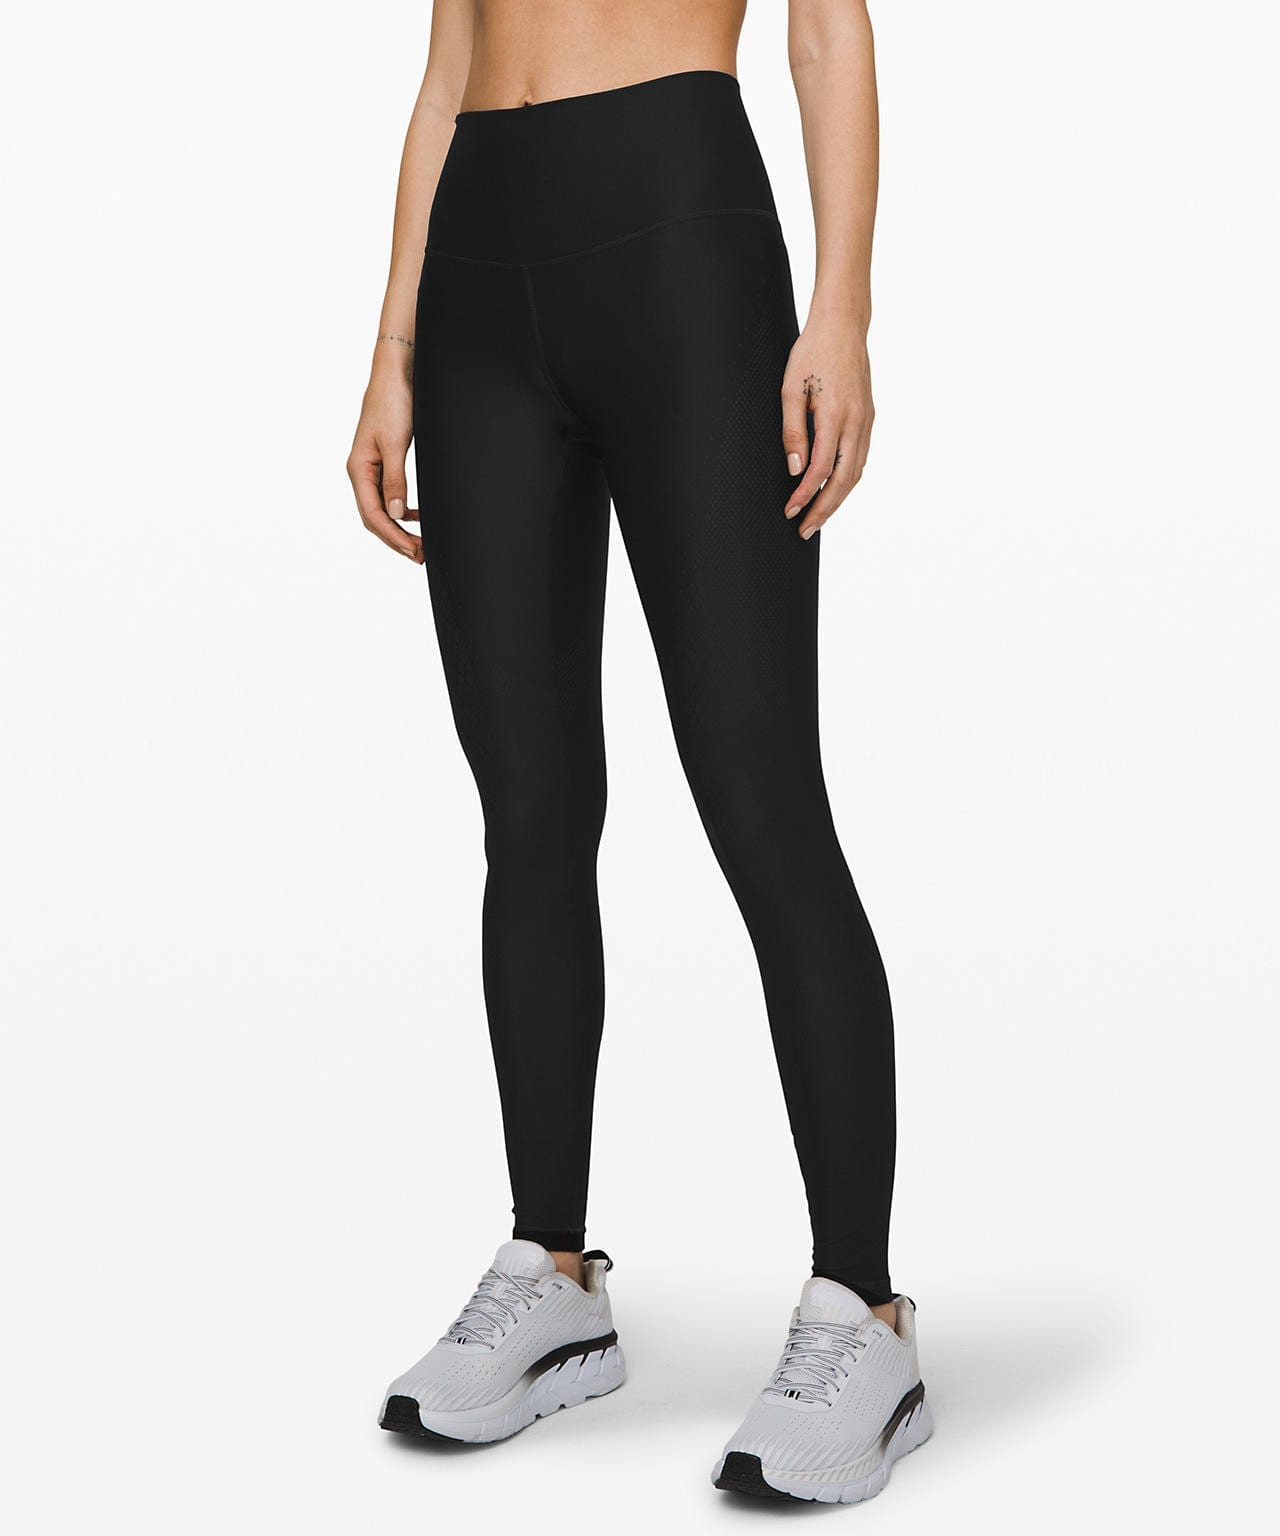 Lululemon: Mapped out high-rise Tight 28″ for